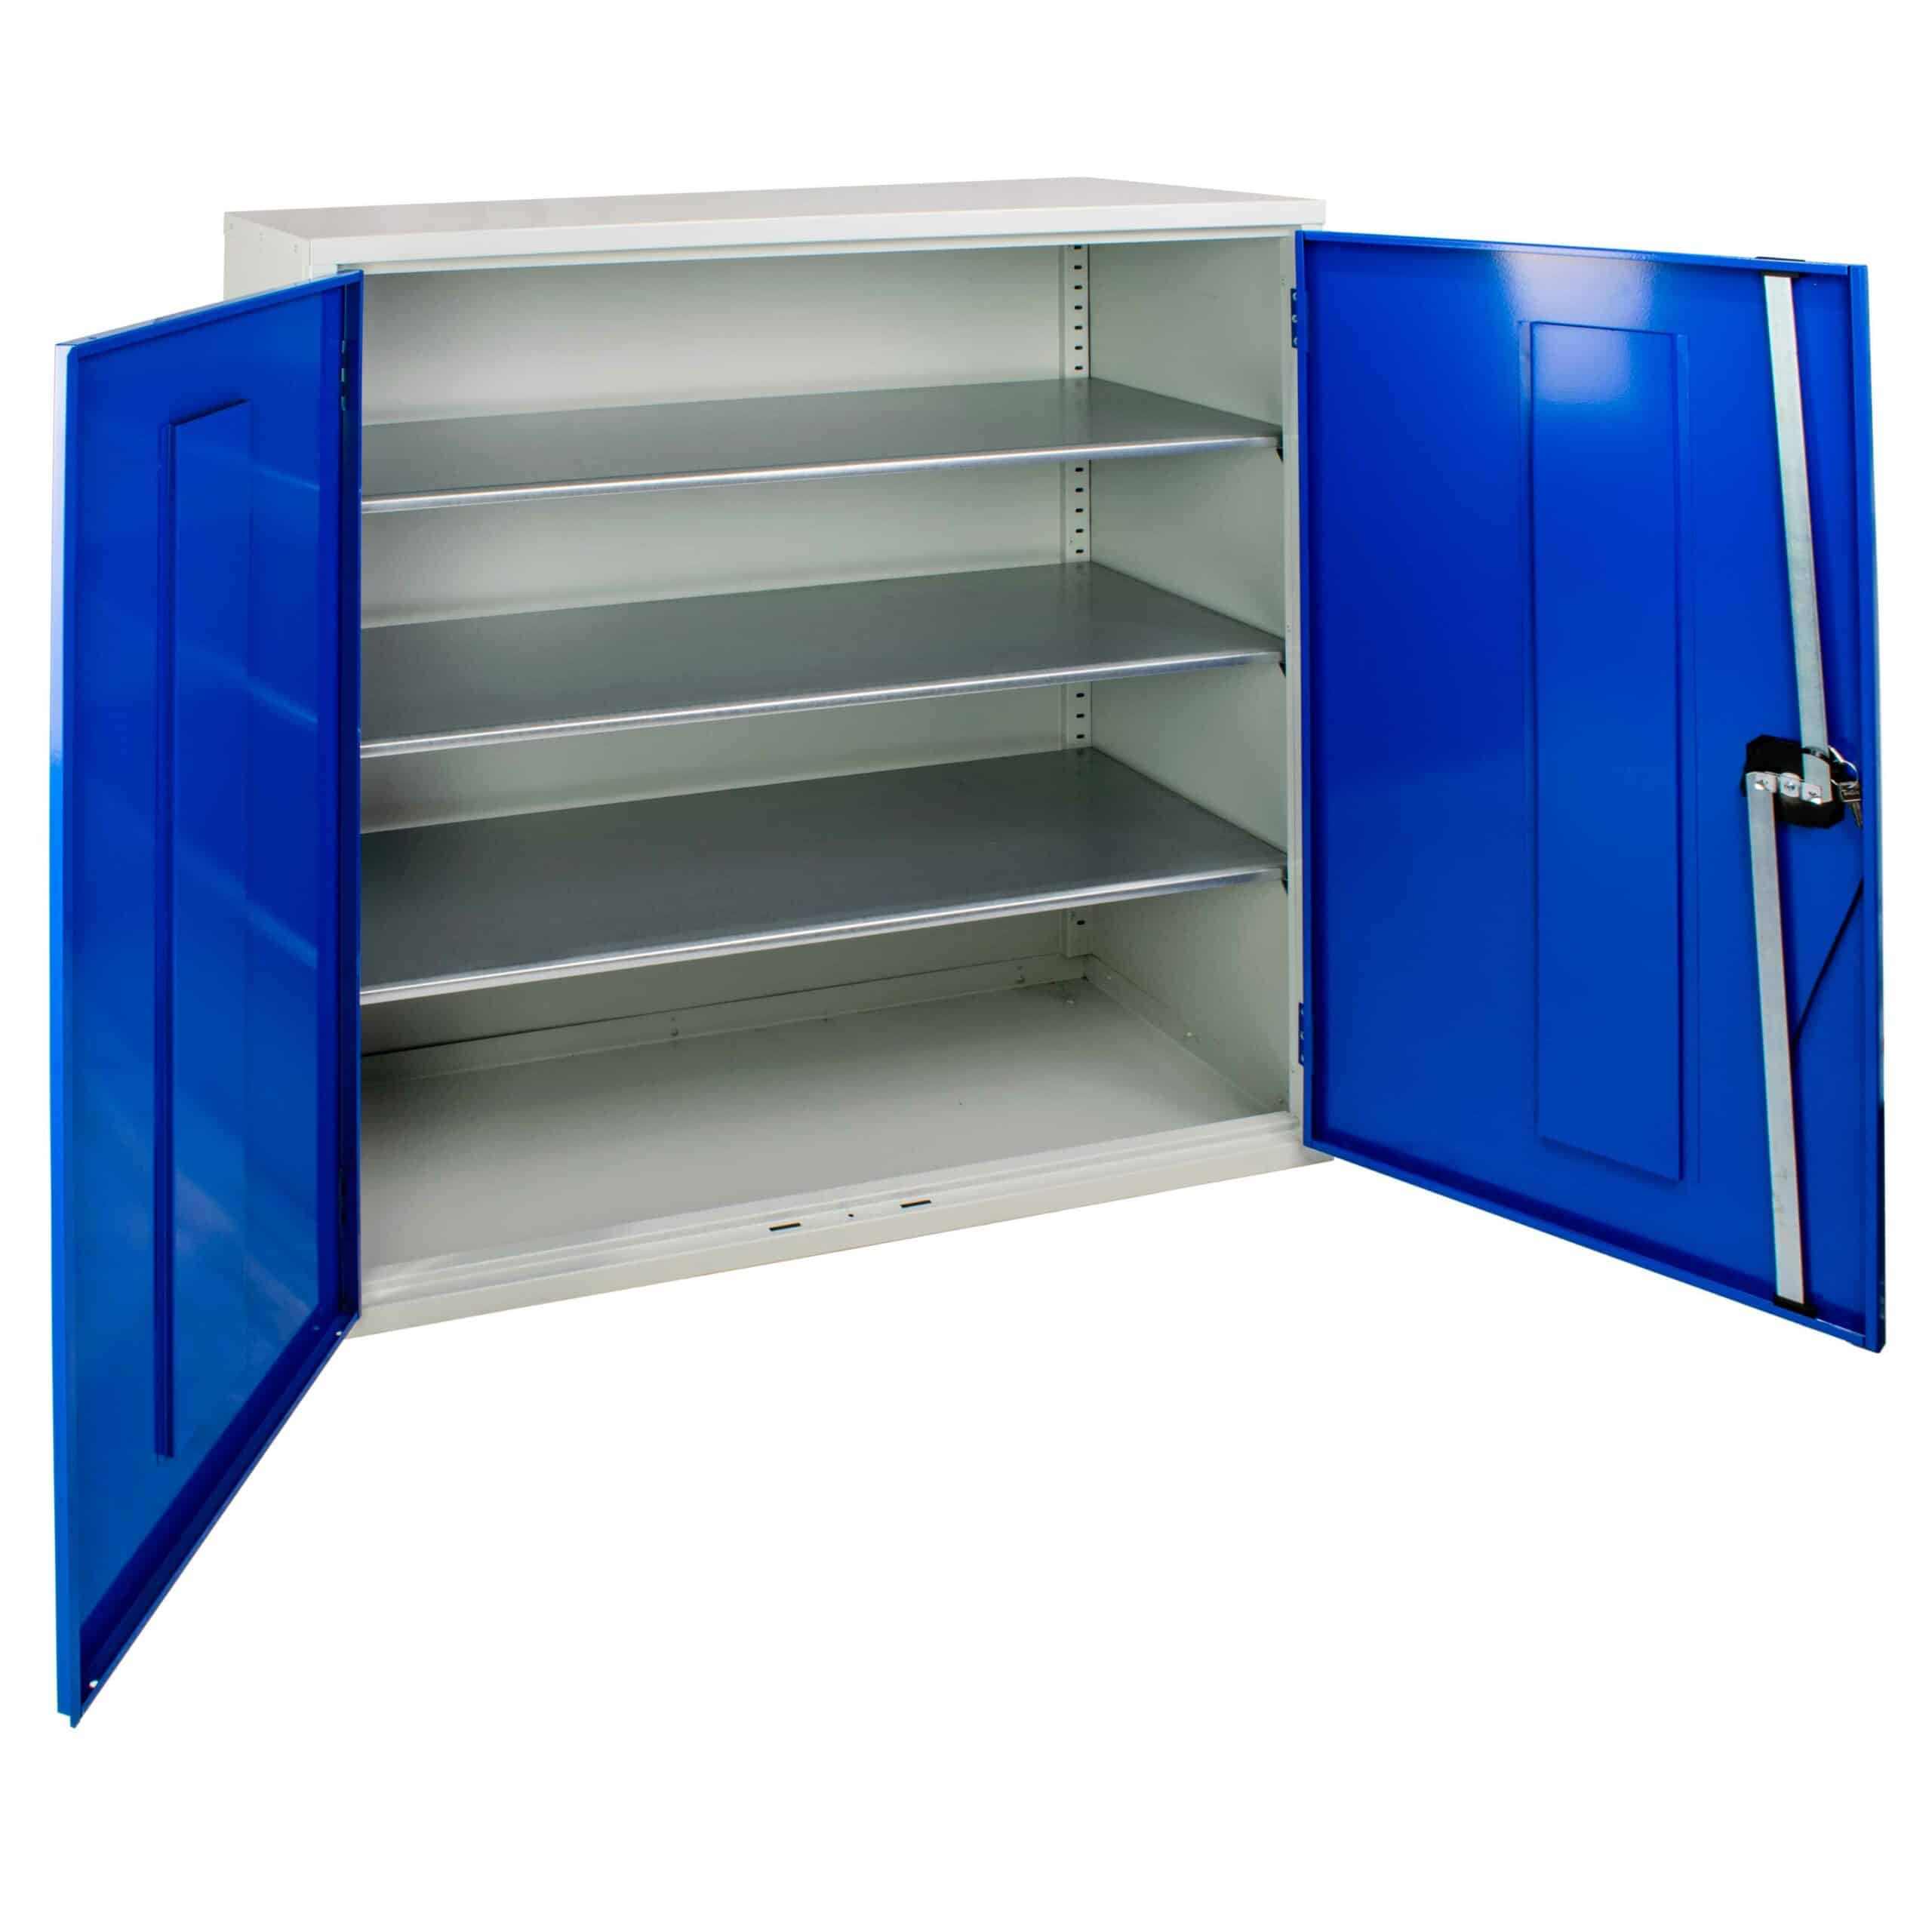 Container Cabinets With 3 Shelves 1000mm High